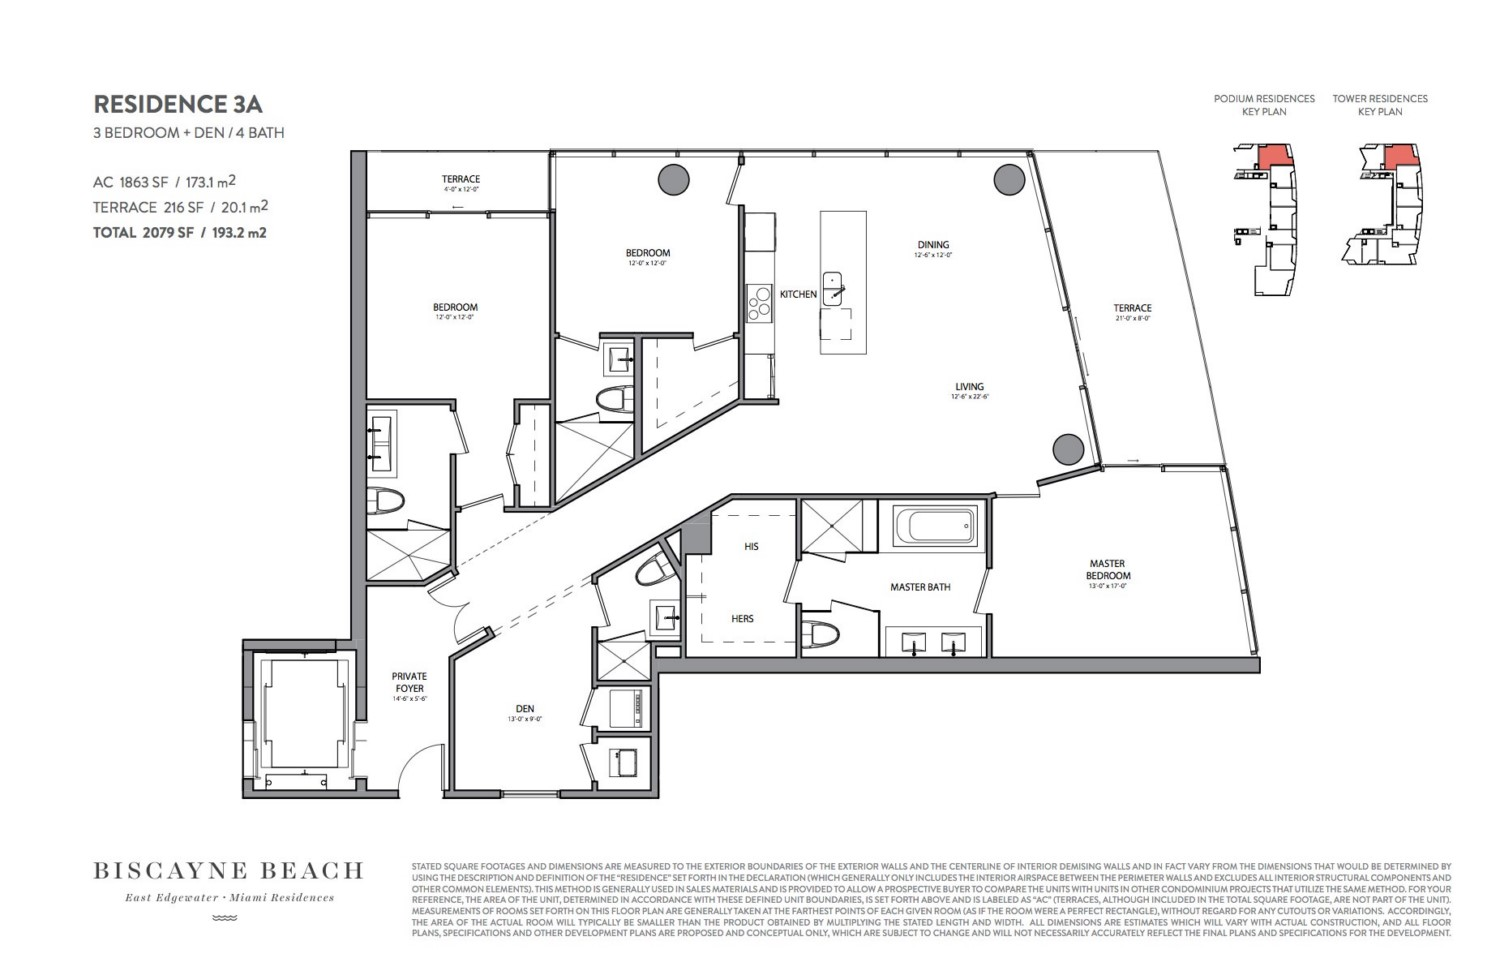 Biscayne Beach - Floorplan 7